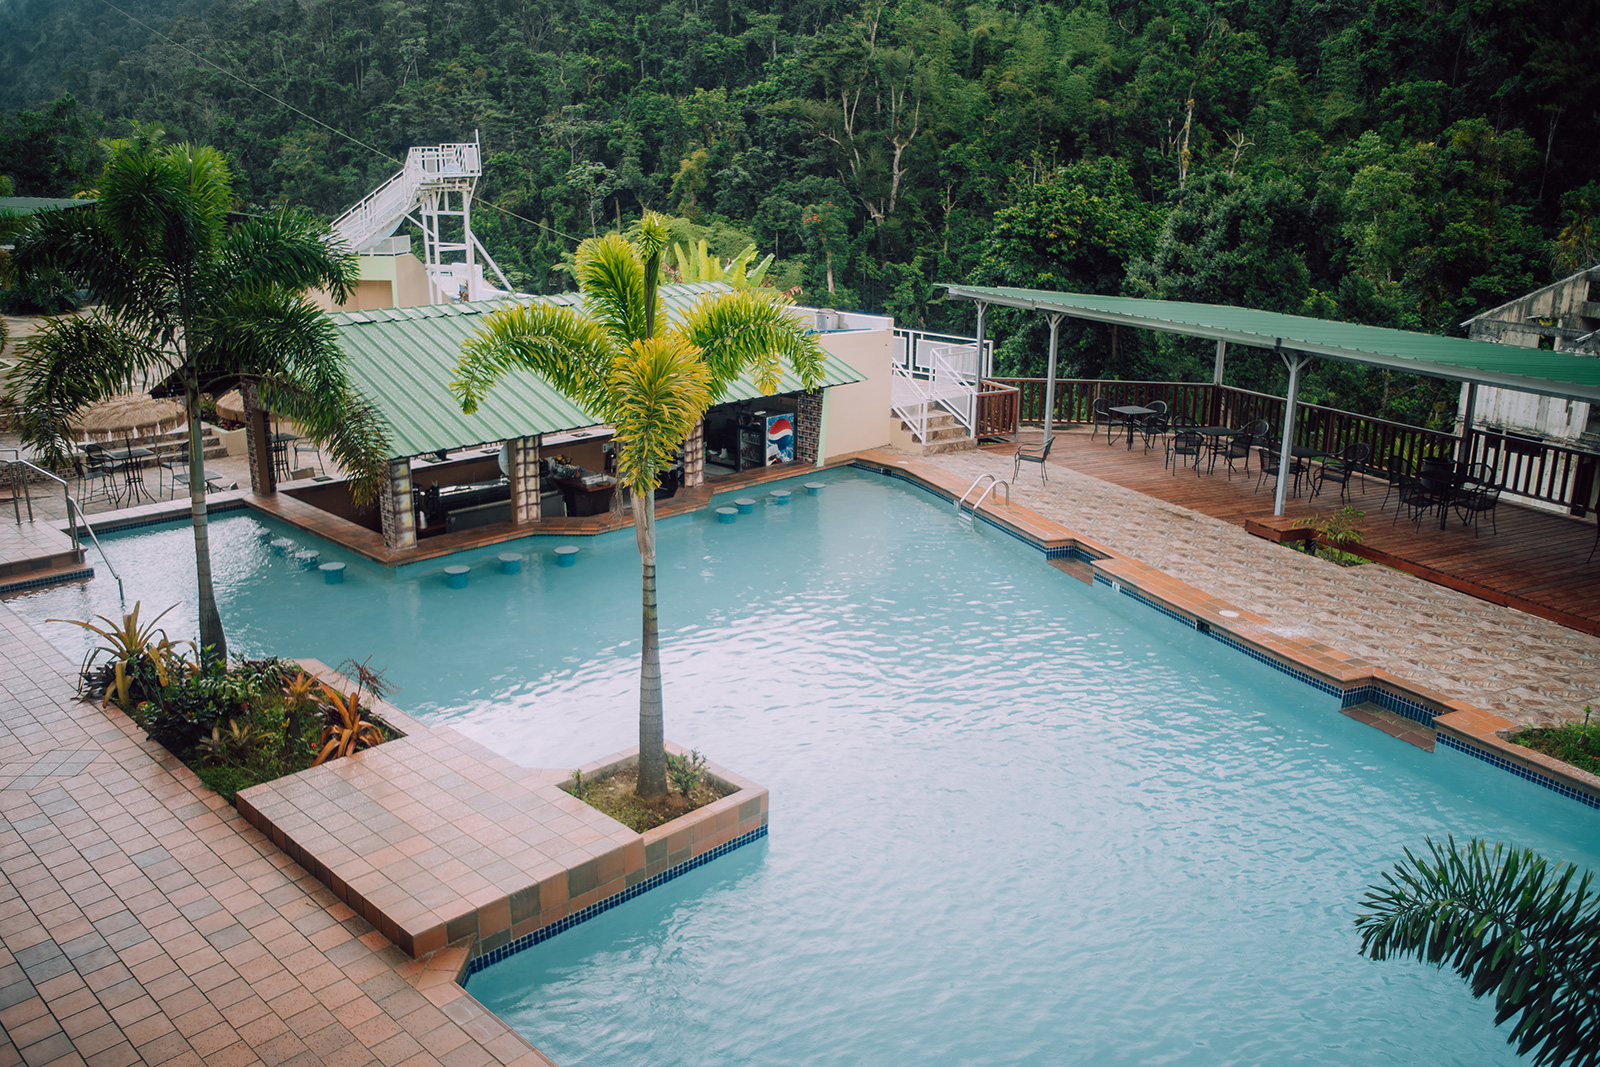 Pool view of Hacienda Negrón in Ciales